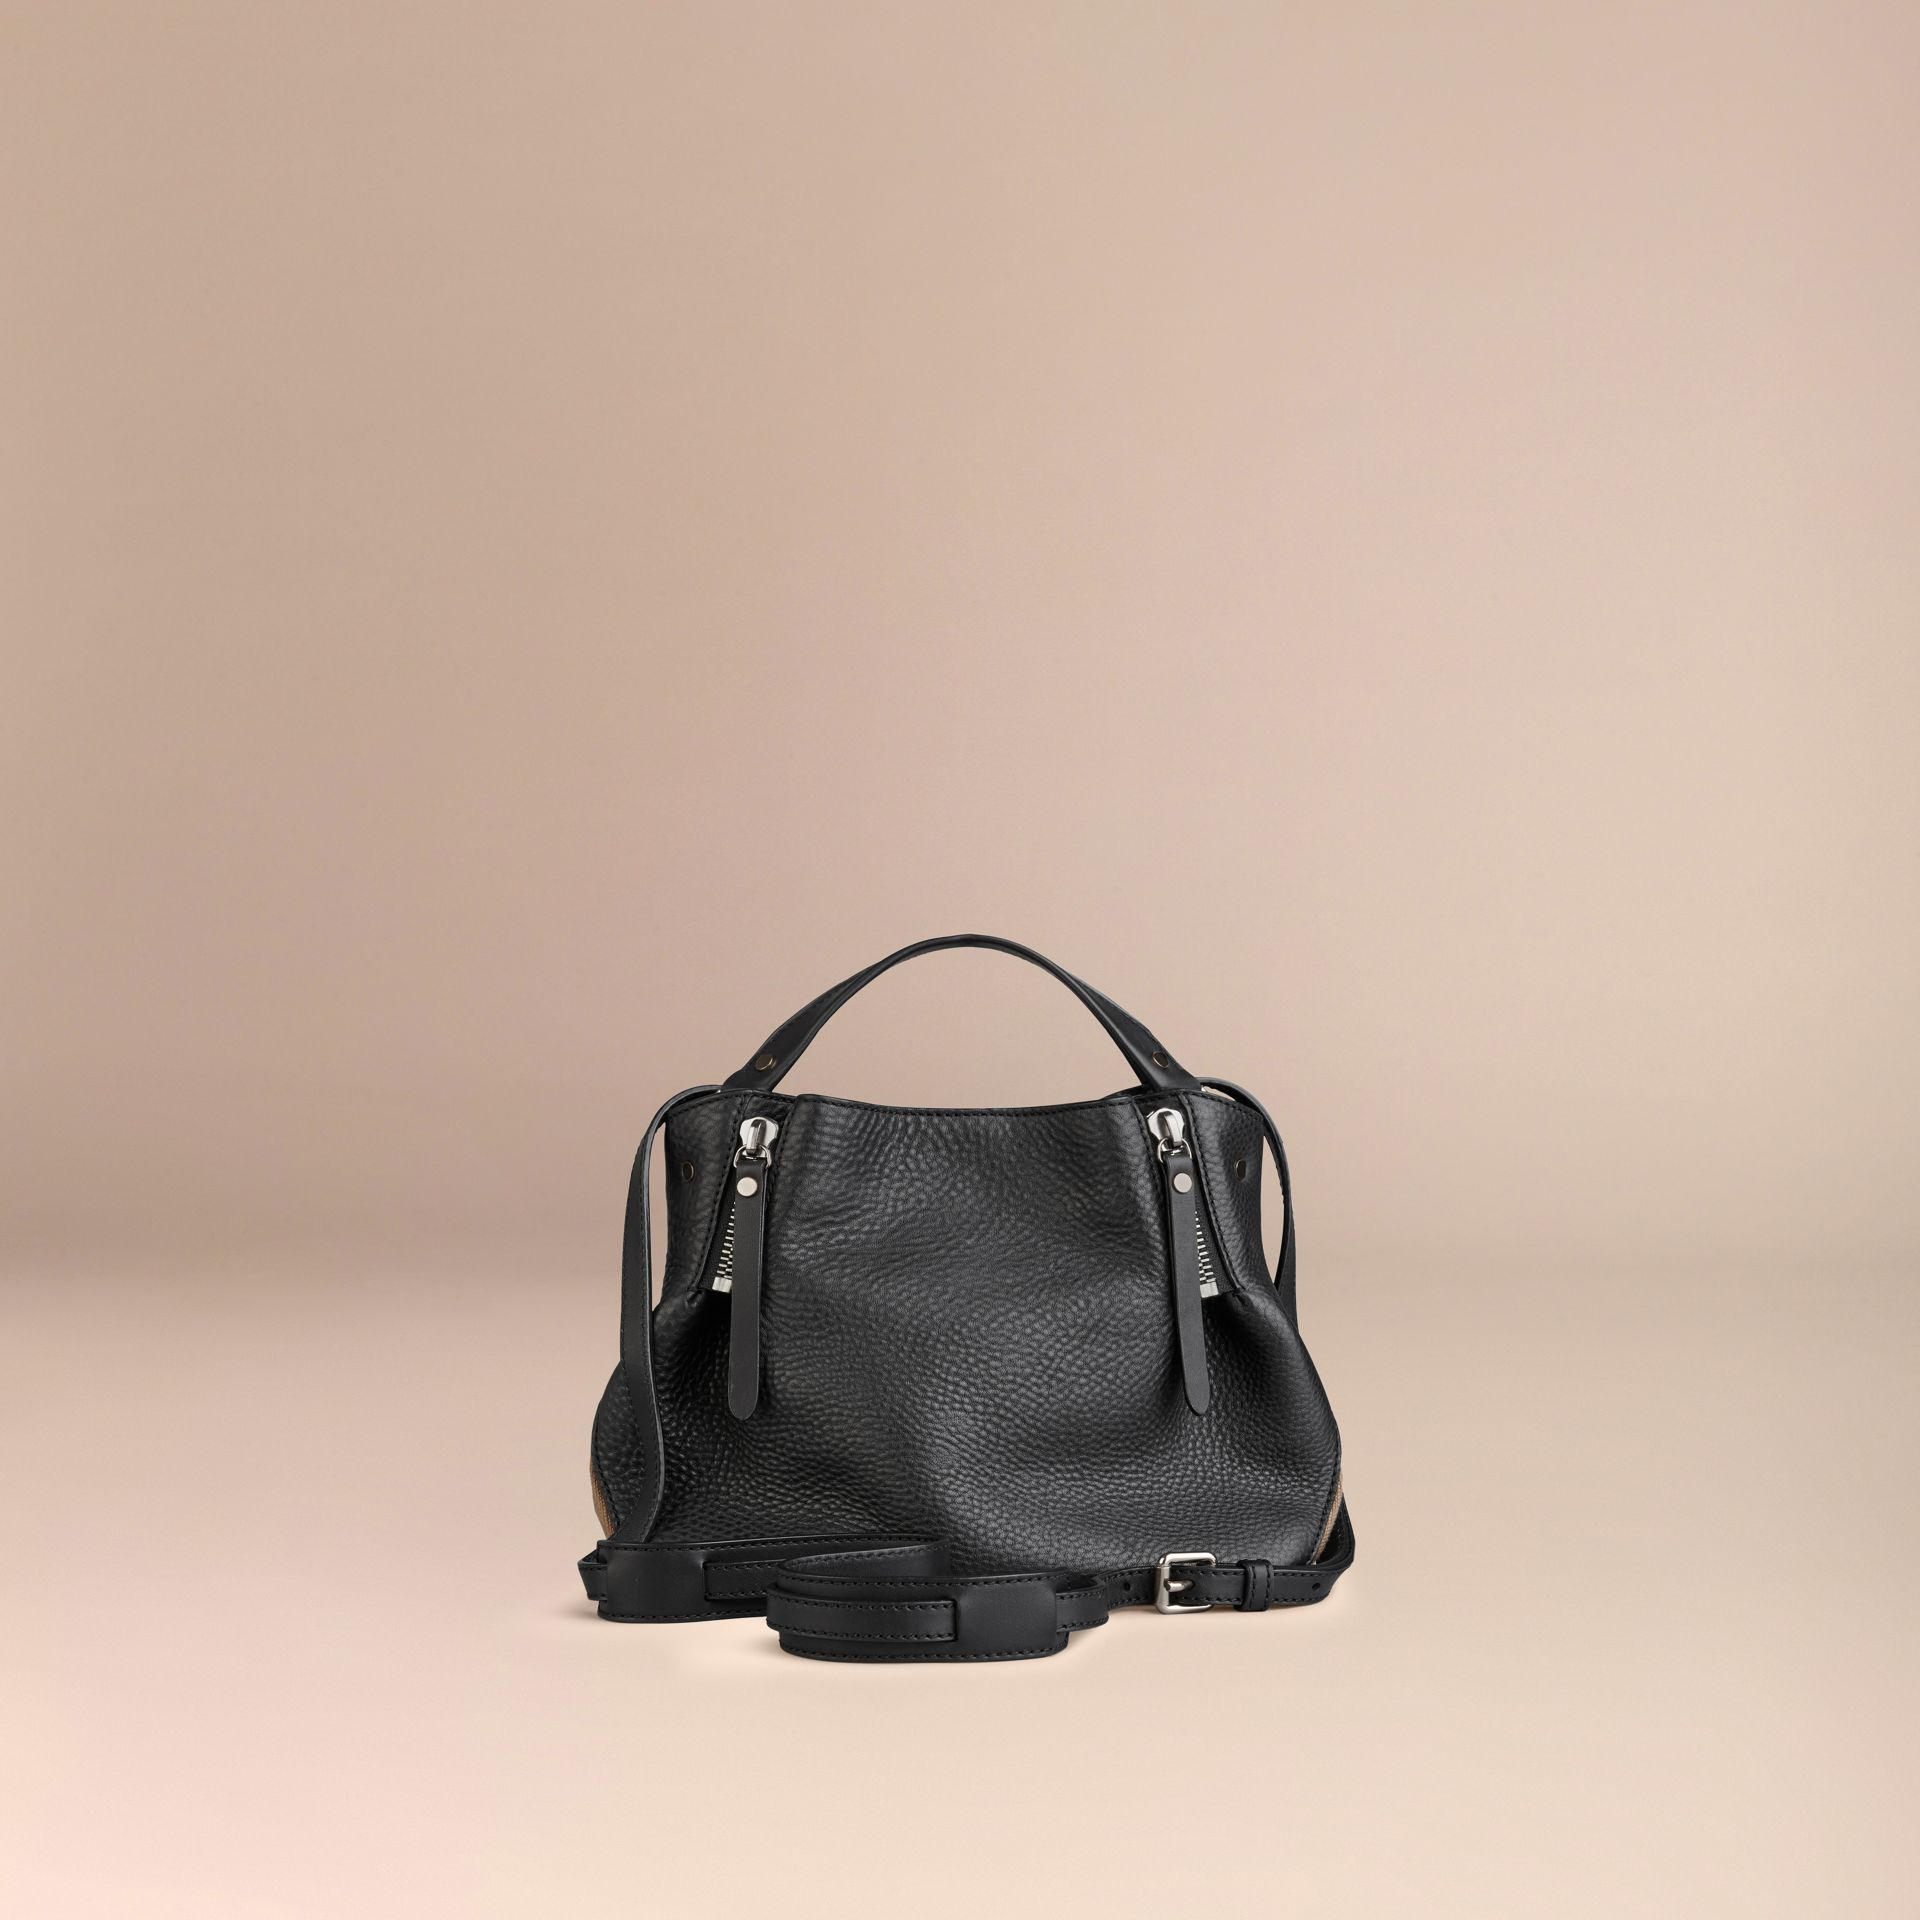 Black Small Check Detail Leather Tote Bag Black - gallery image 5